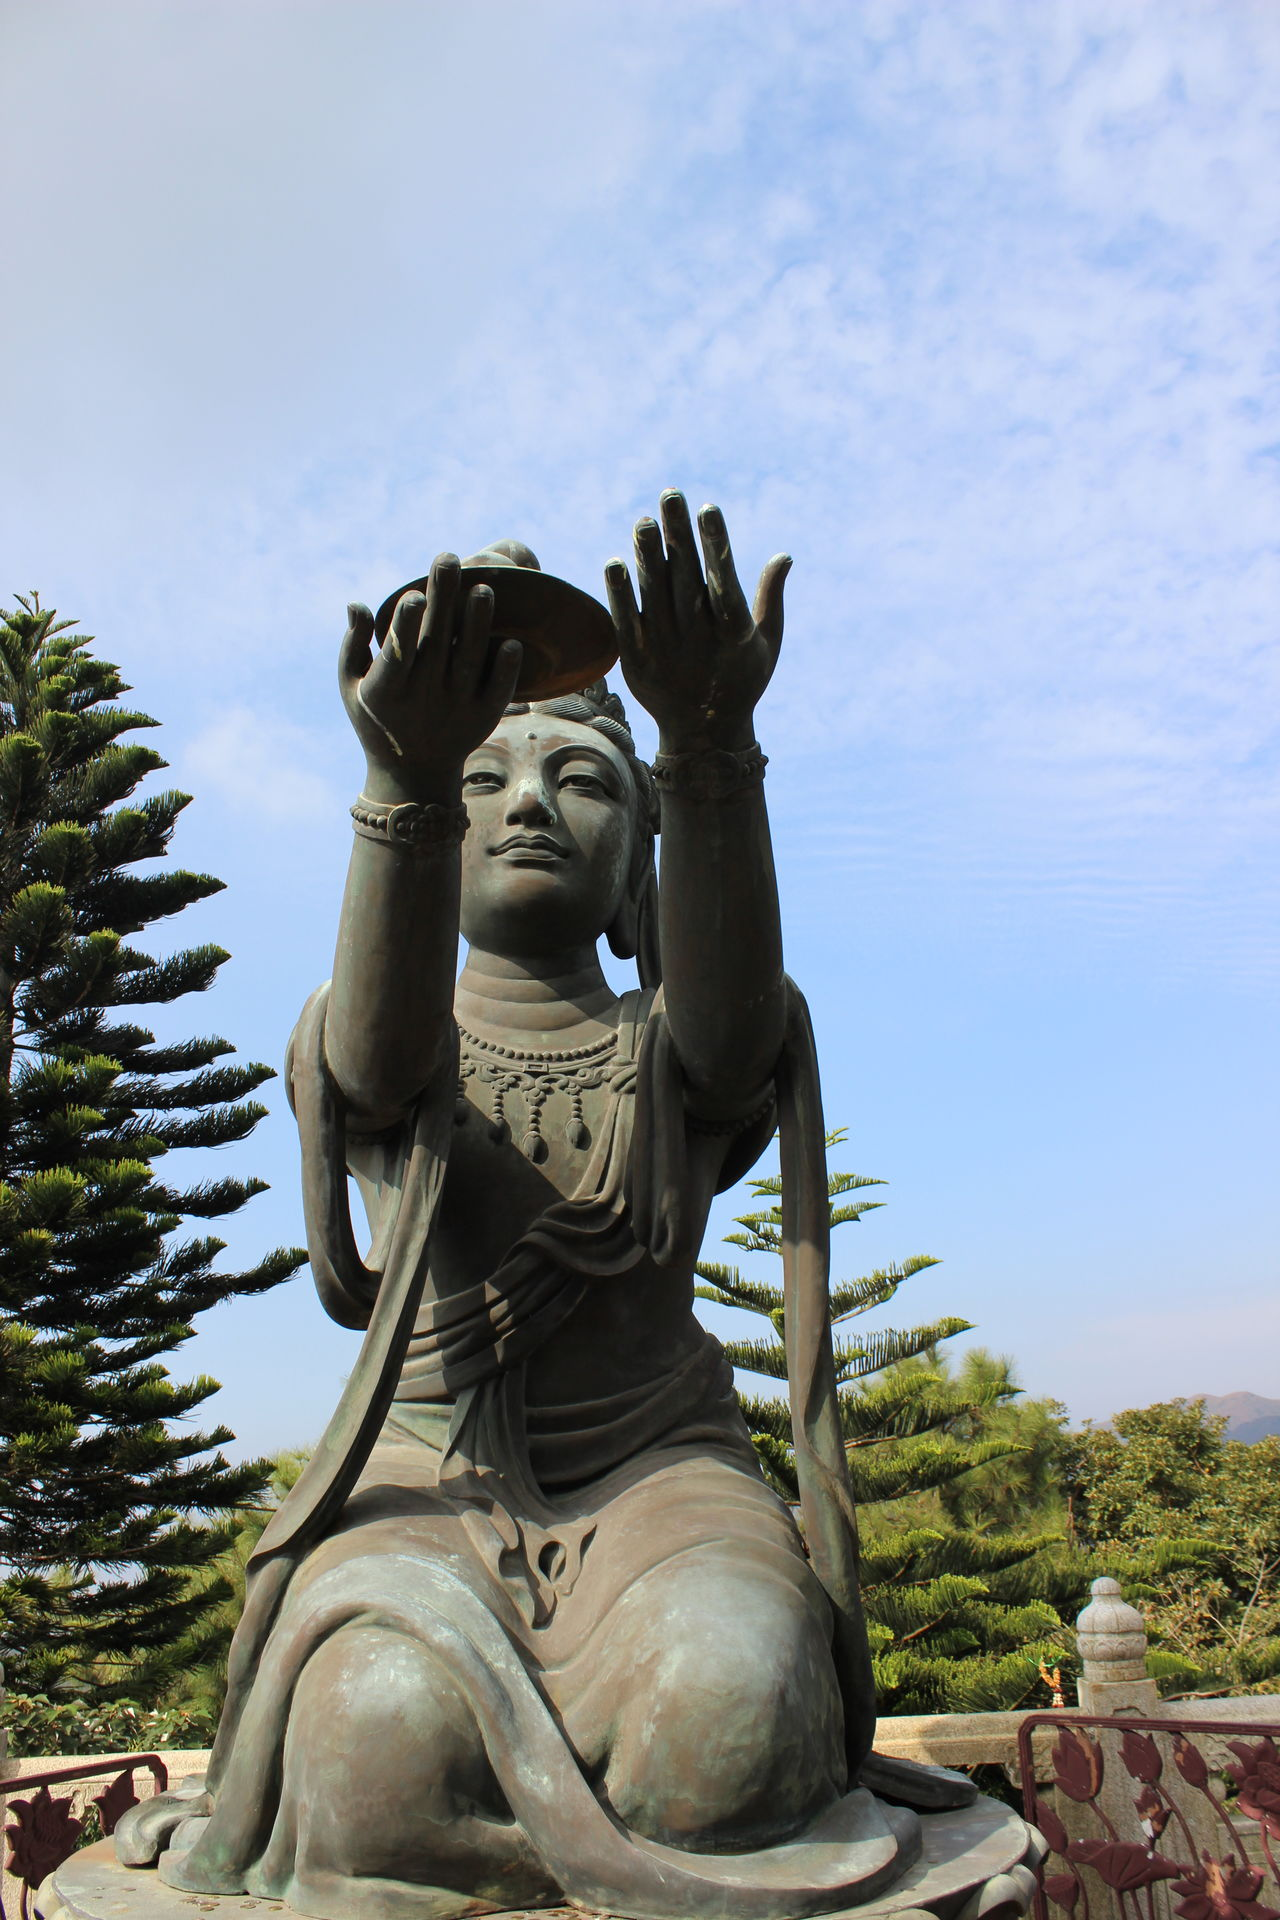 Statue Sculpture No People Outdoors Day Scenics Travel Photography Travel Destinations HongKong Tian Tan Buddha (Giant Buddha) 天壇大佛 Architecture Symbol Statue Beauty In Nature